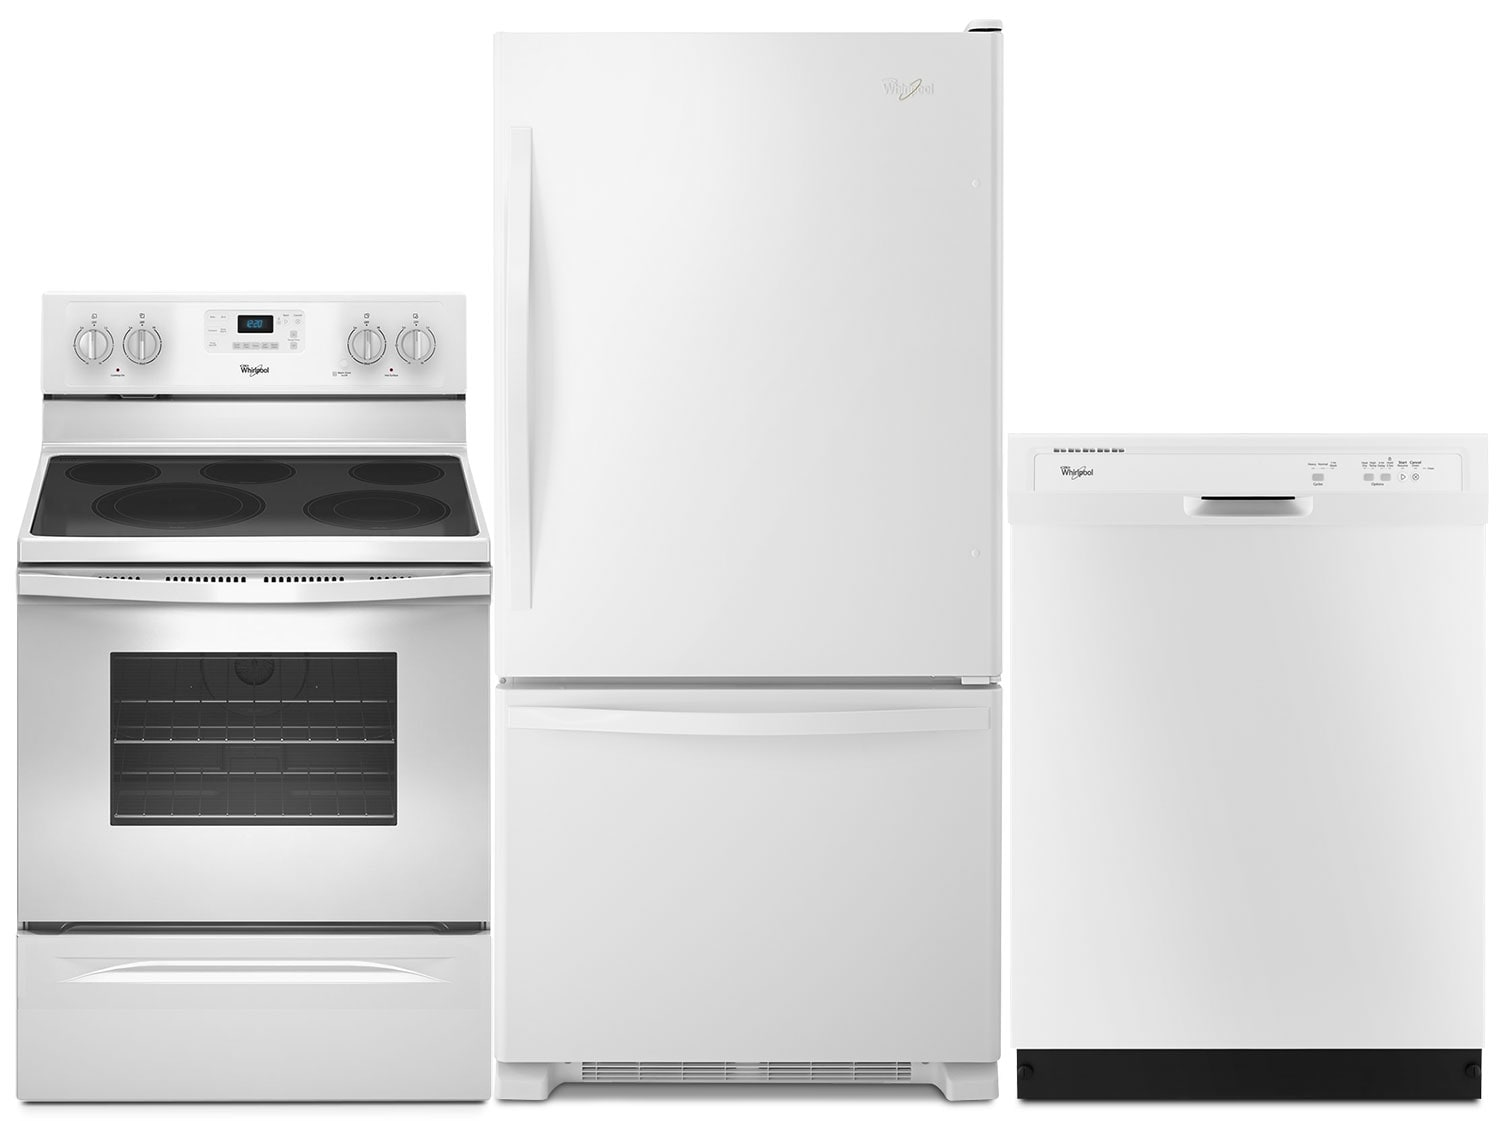 Cooking Products - Whirlpool® 19 Cu. Ft. Refrigerator, 5.3 Cu. Ft. Electric Range and Dishwasher Package